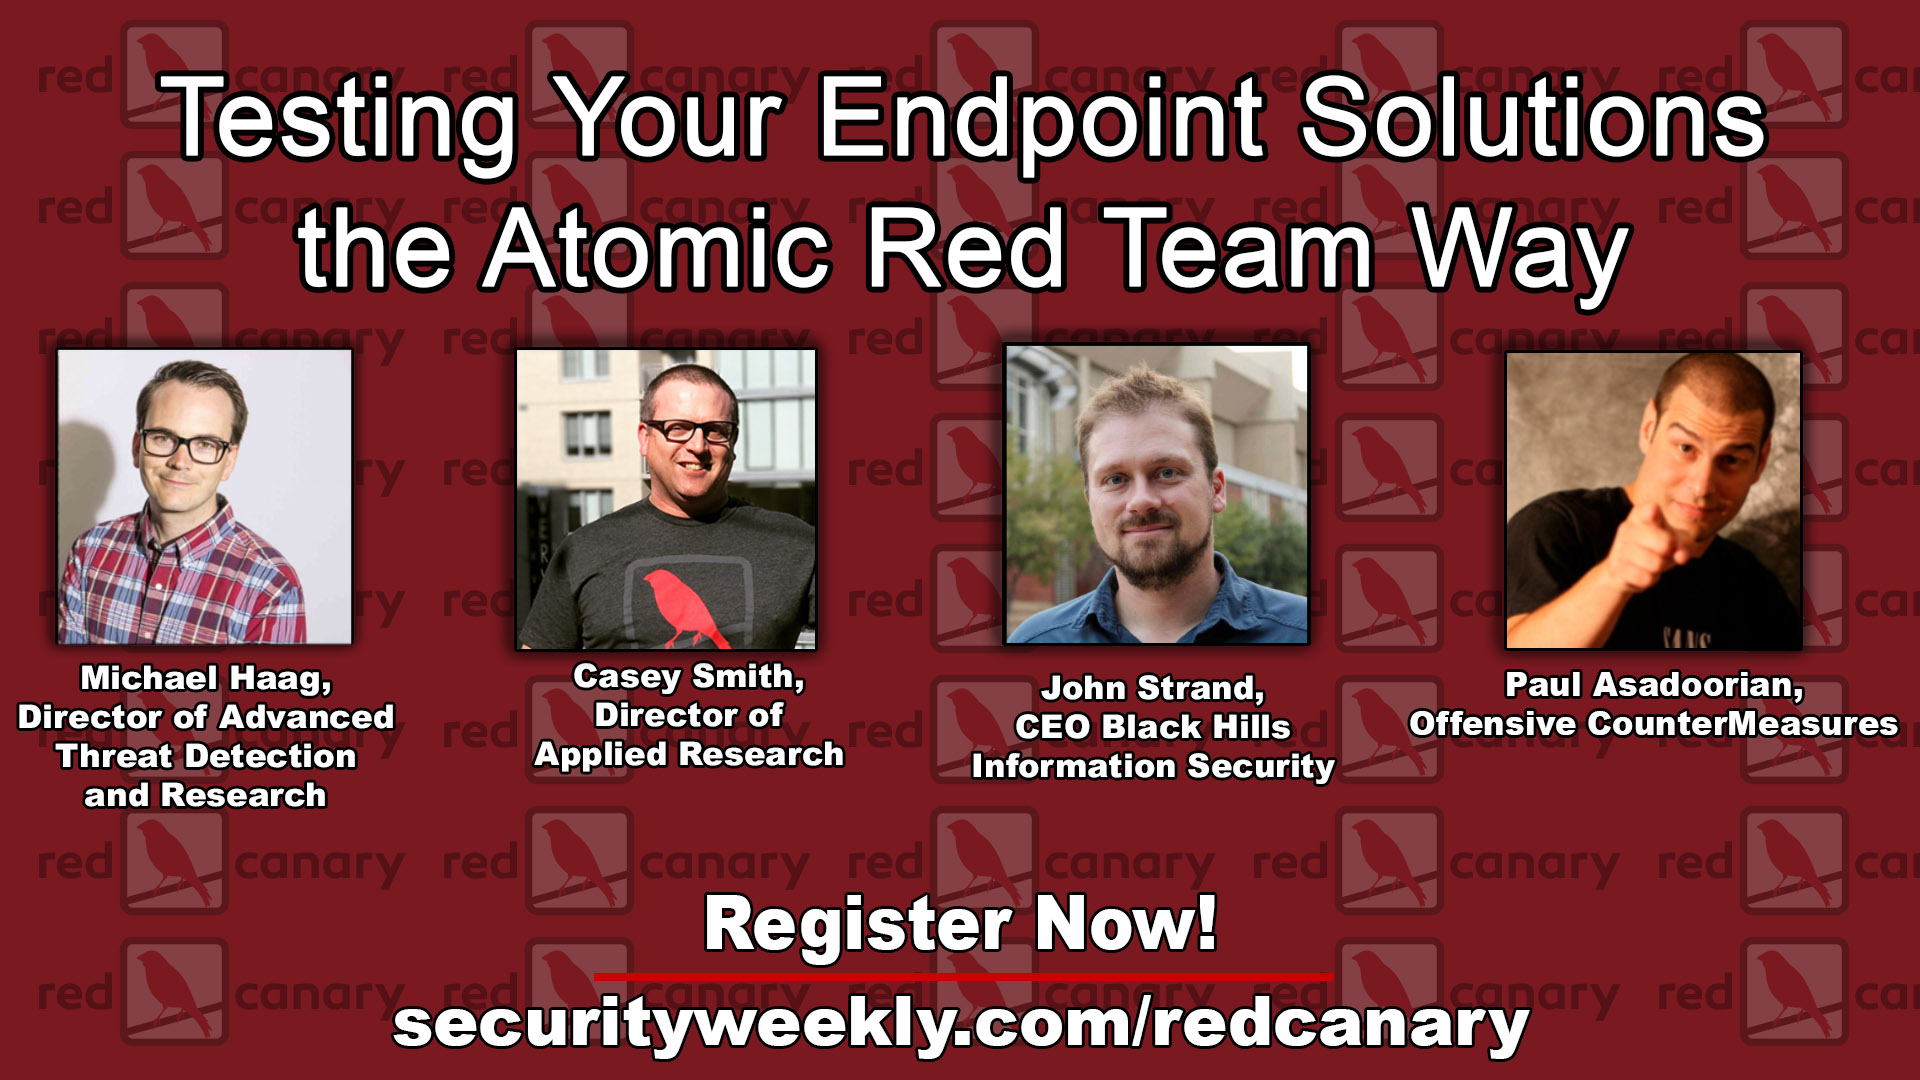 RedCanary Webcast 1?resize=1080%2C608&ssl=1 how to test endpoint security solutions (the atomic red team way